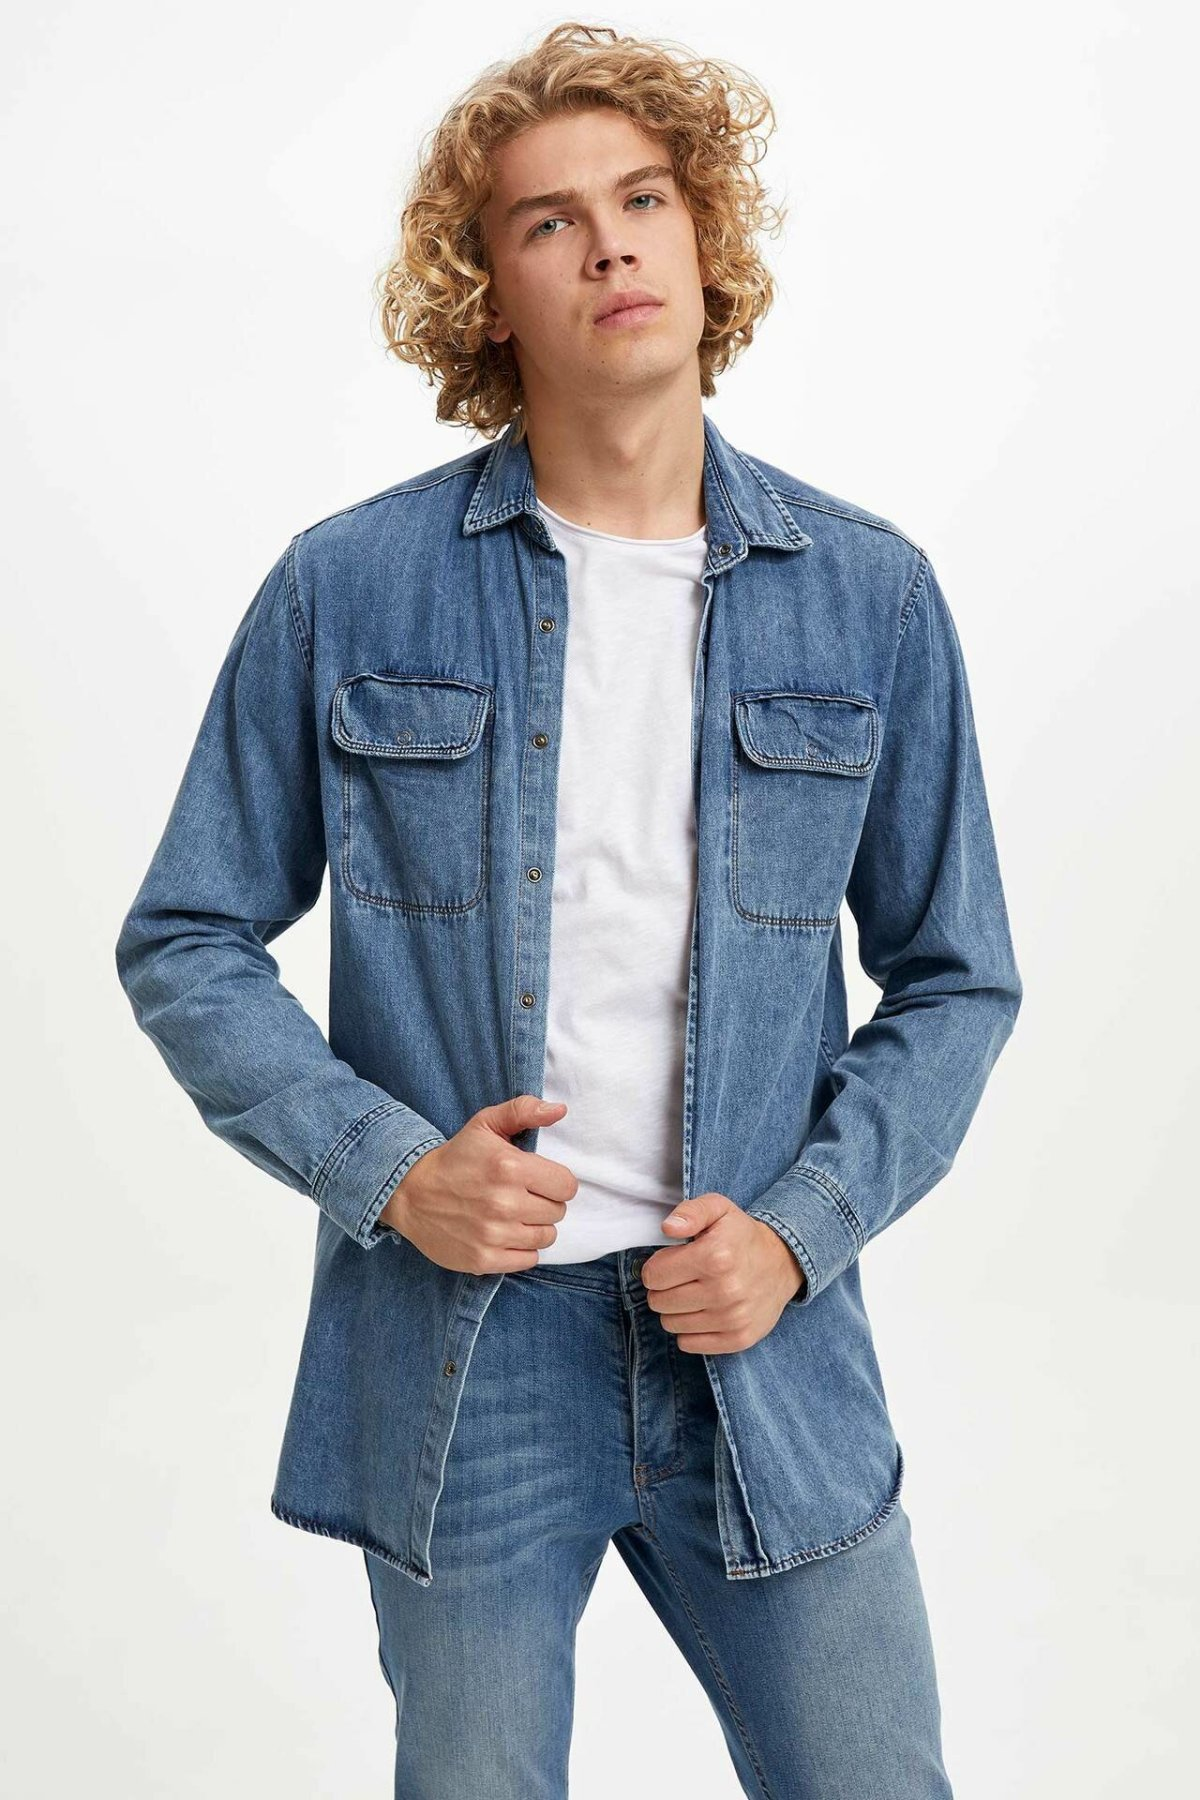 DeFacto Autumn Fashion Man Lapel Long Sleeve Denim Blue Shirt Men Casual Jeans Blouser Male Leisure Shirts - M4052AZ19AU